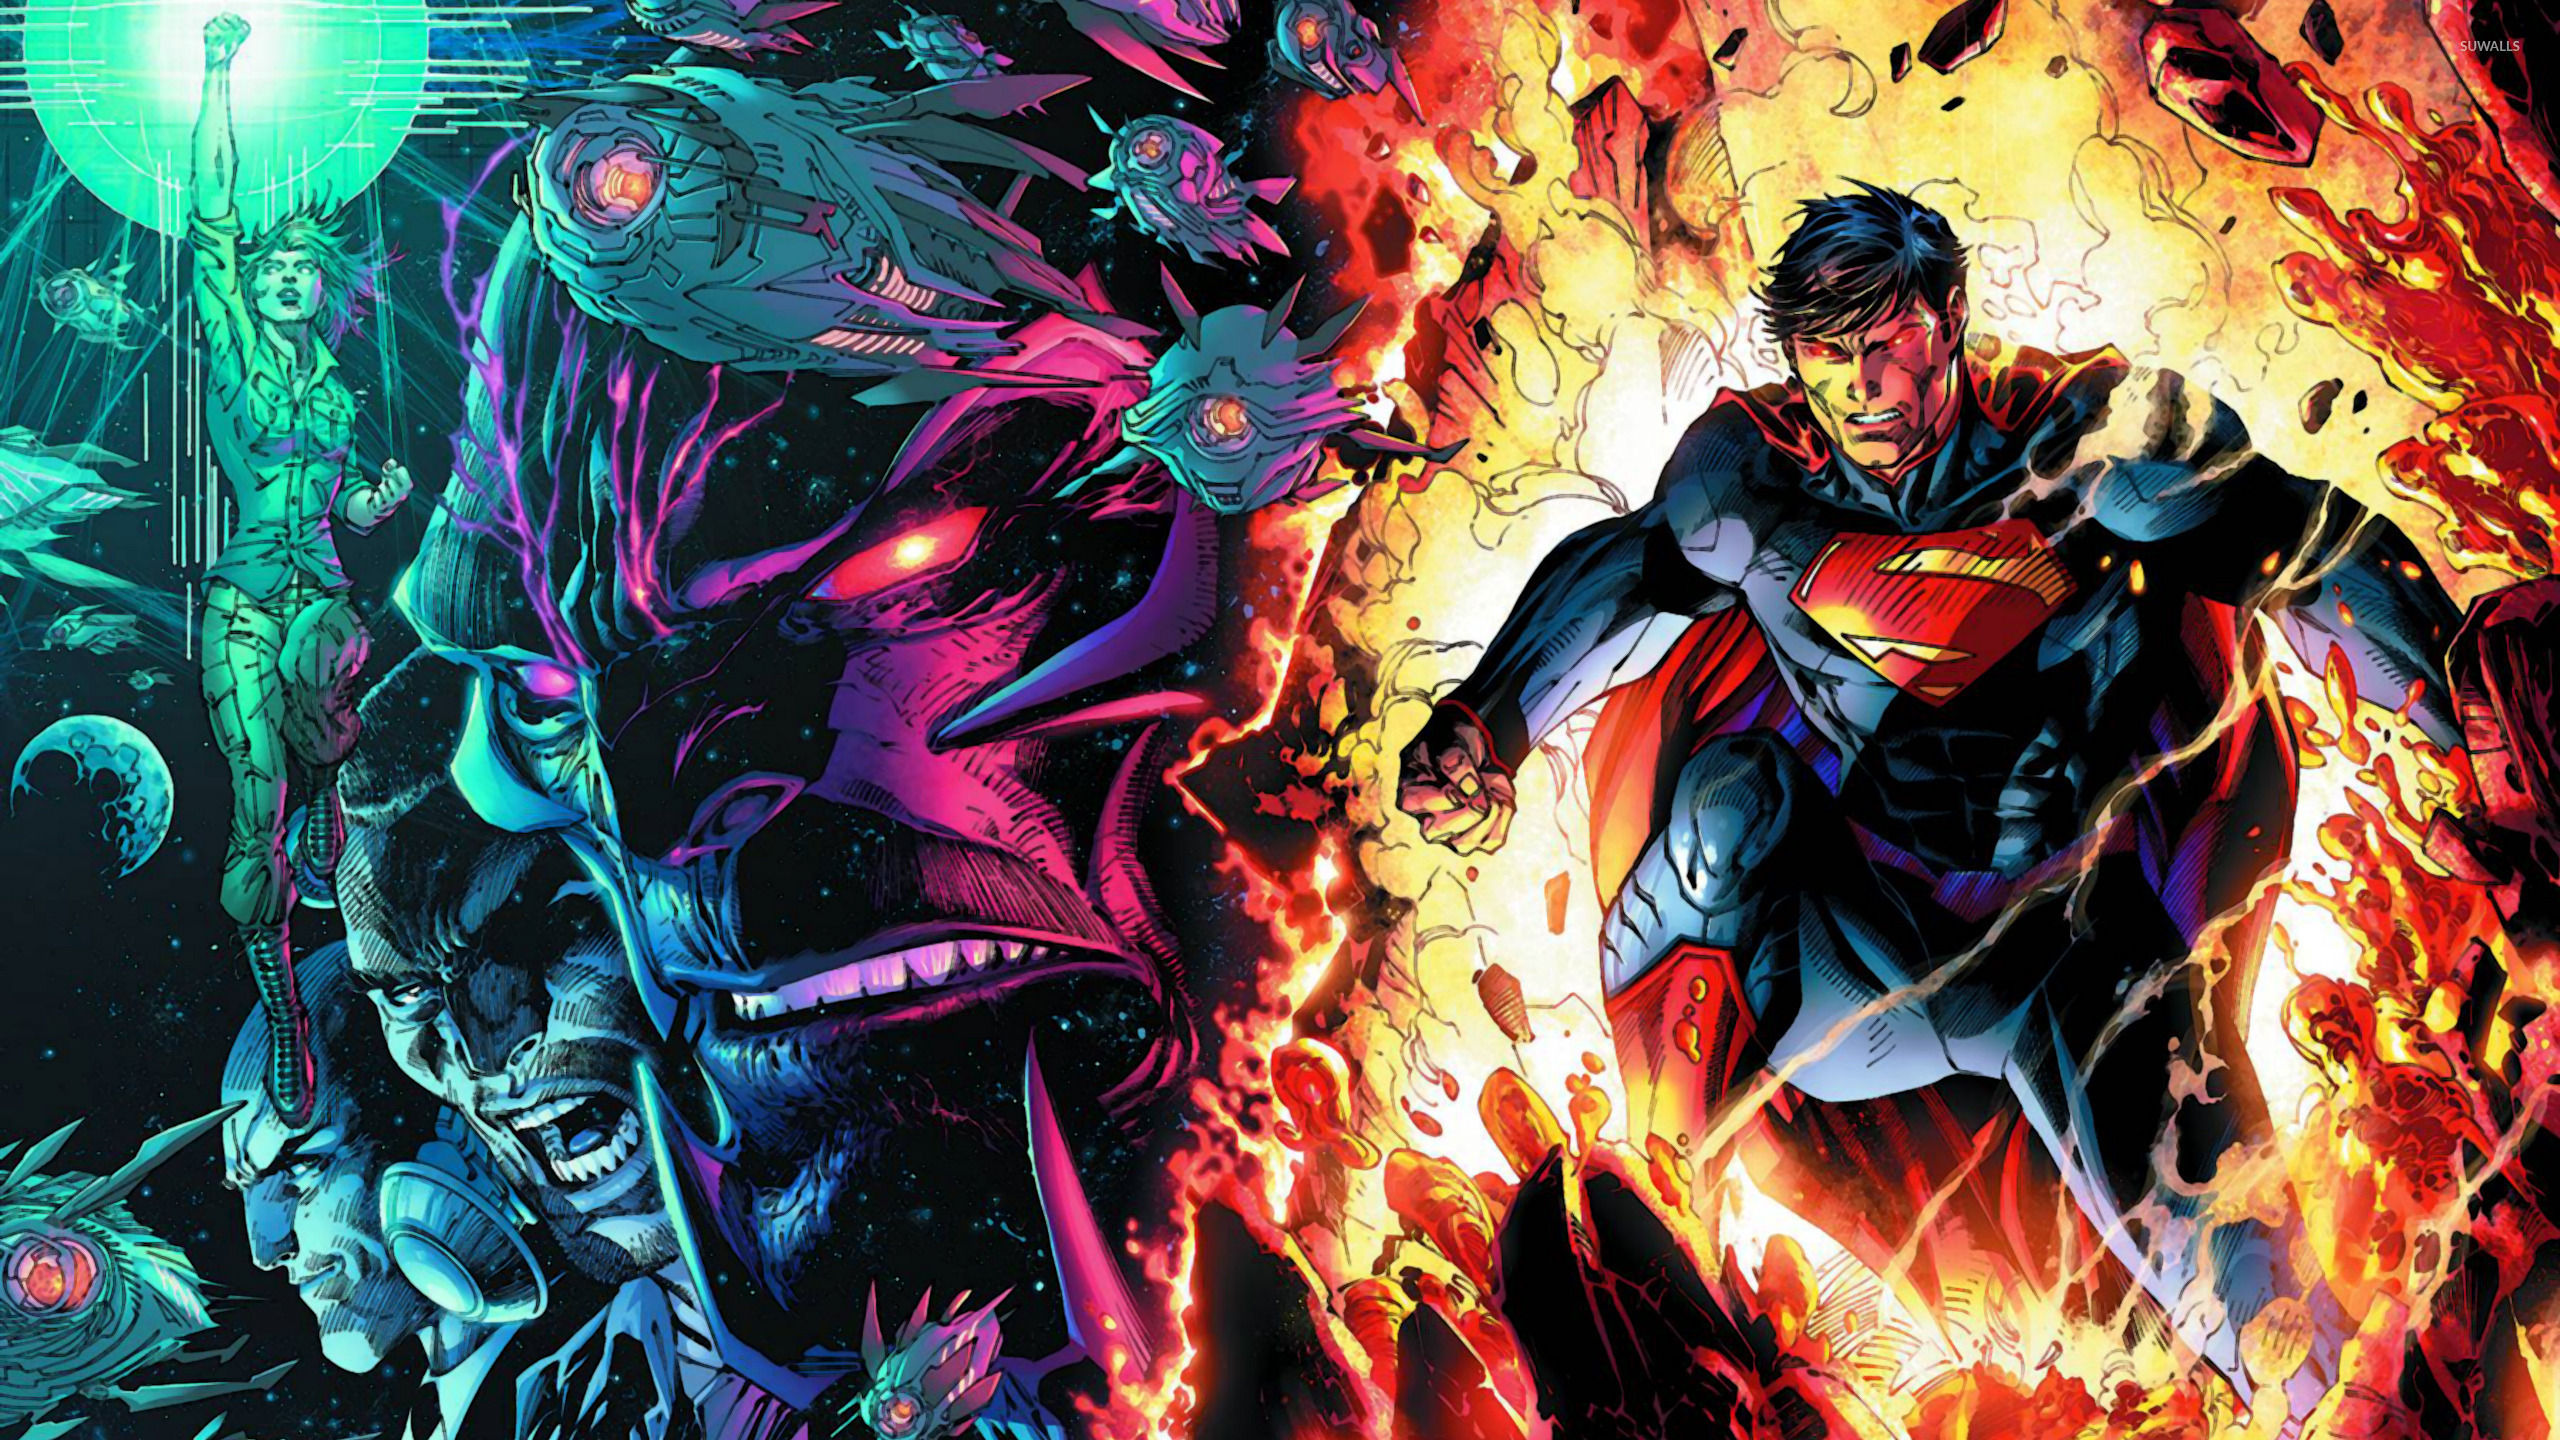 Superman Unchained 31891 2560×1440 Wallpaper